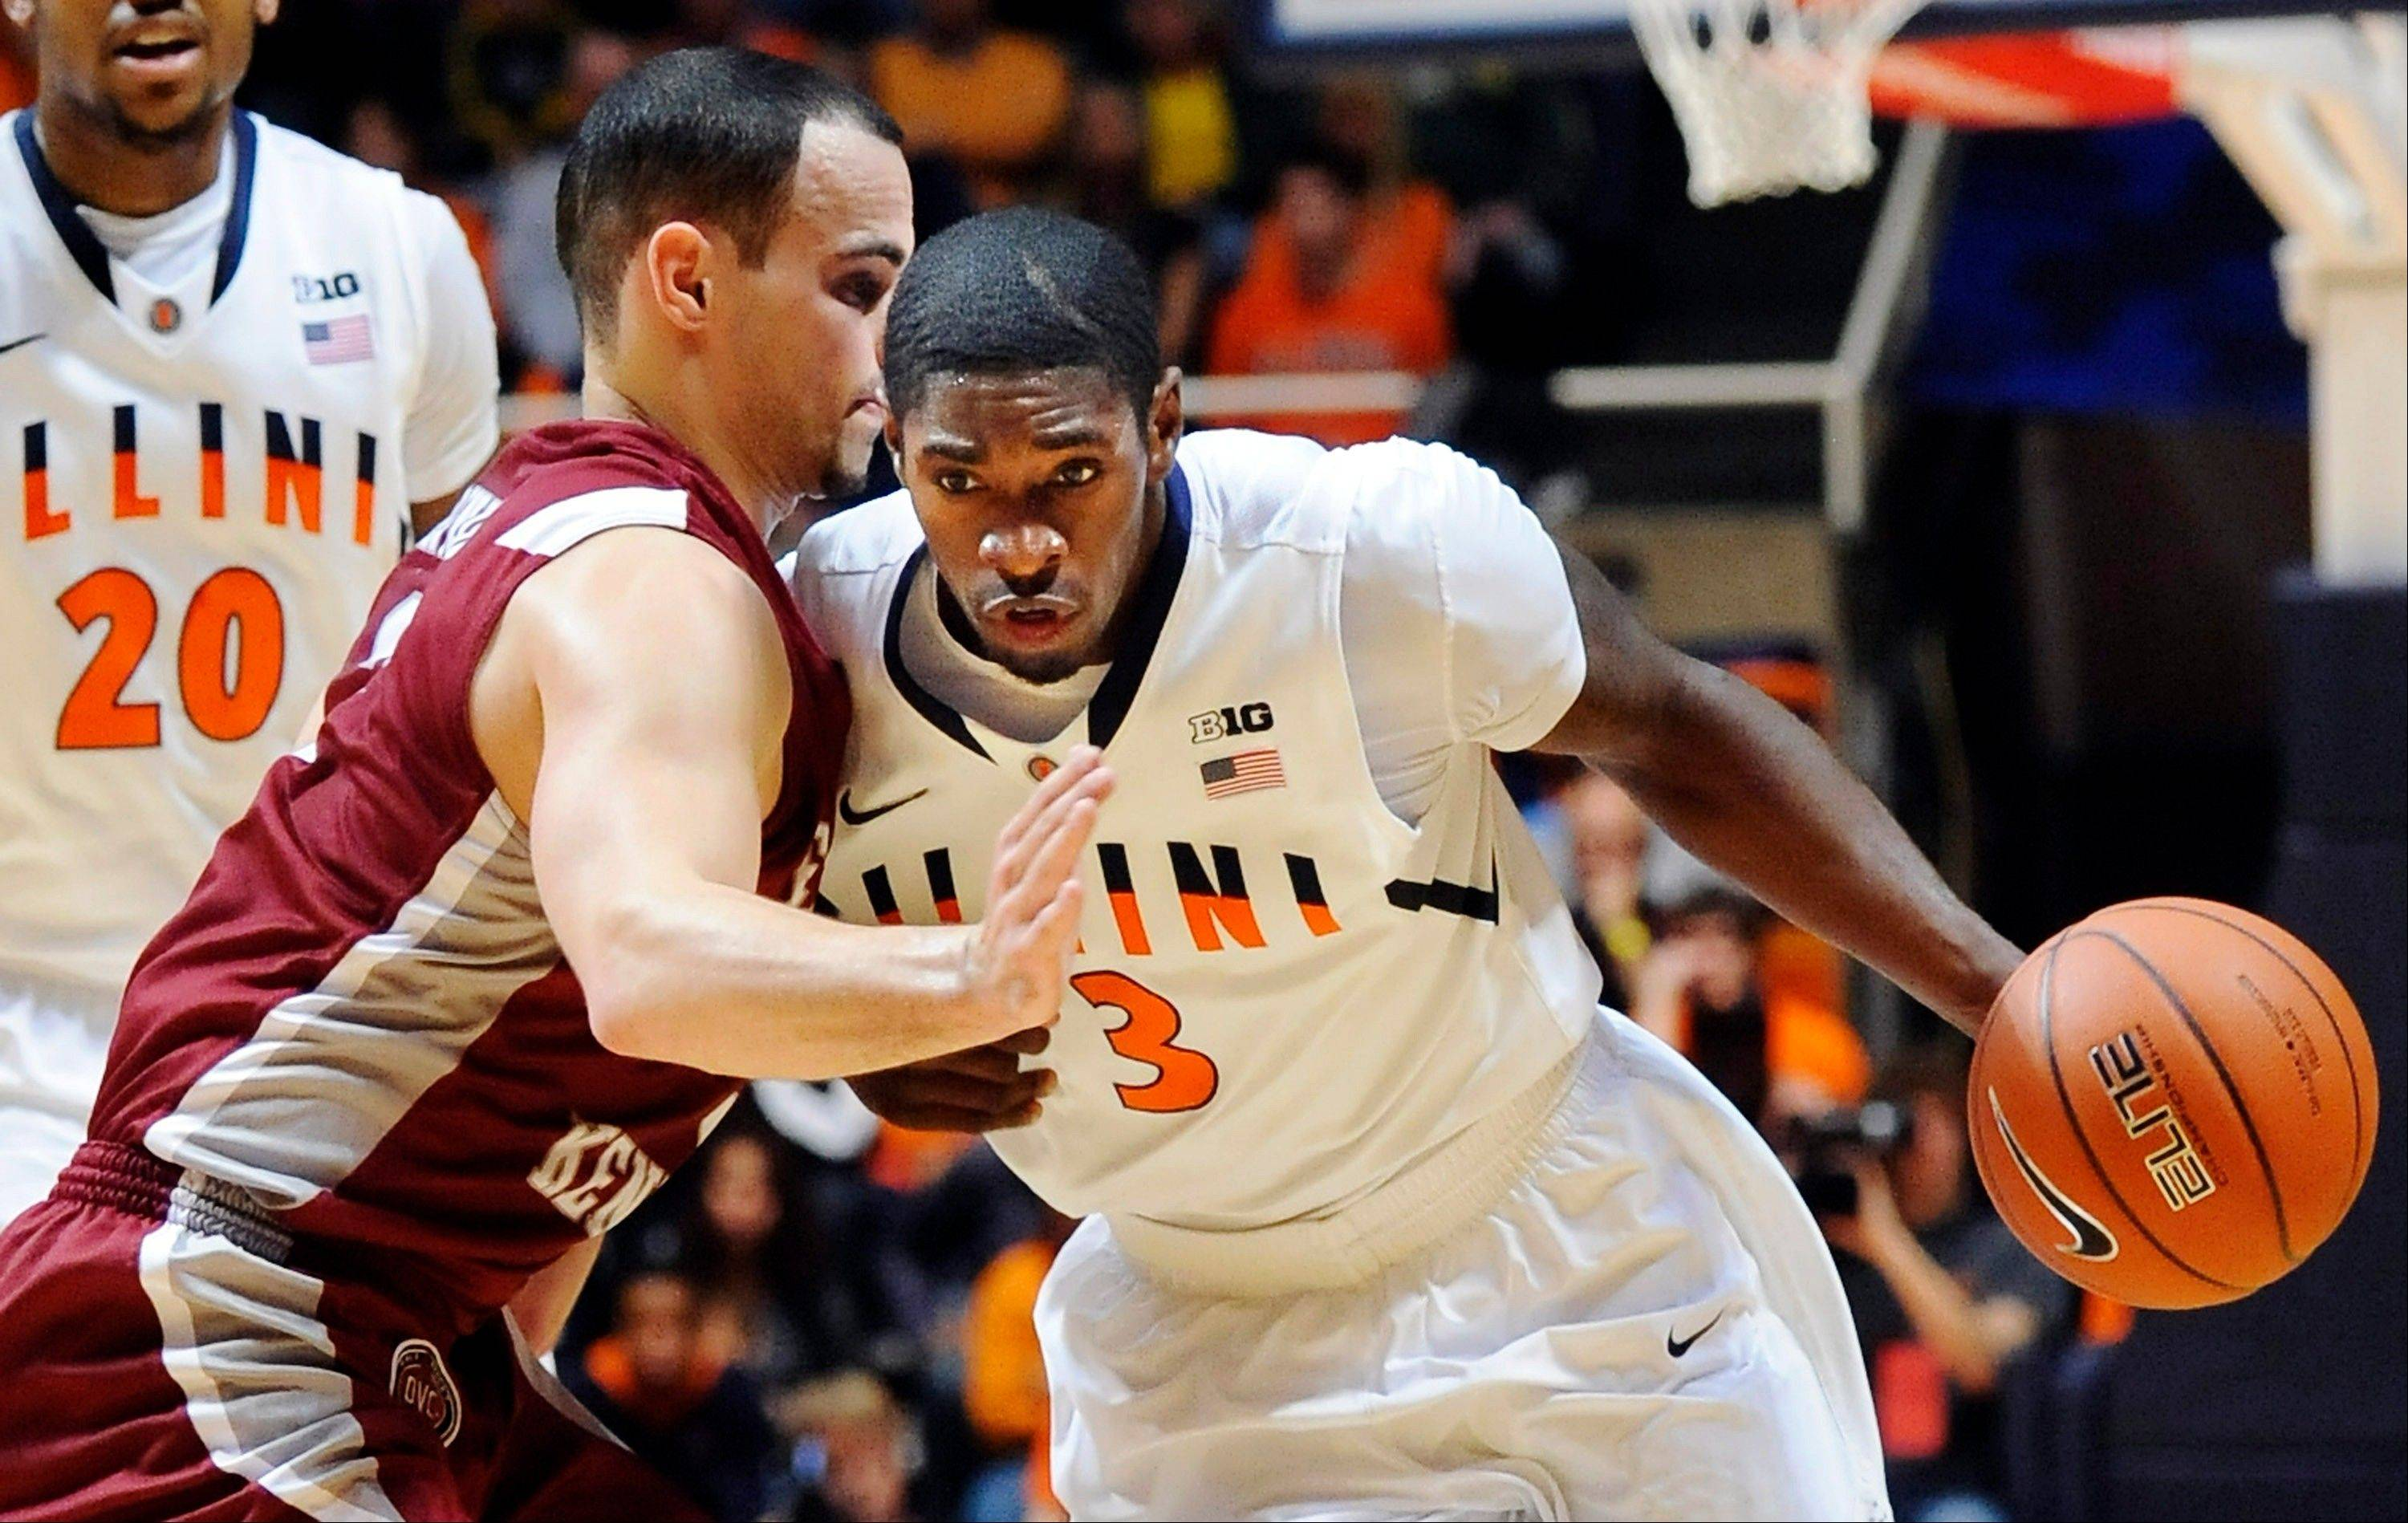 Illinois guard Brandon Paul drives against Eastern Kentucky Sunday during the first half. Illinois won 66-53.